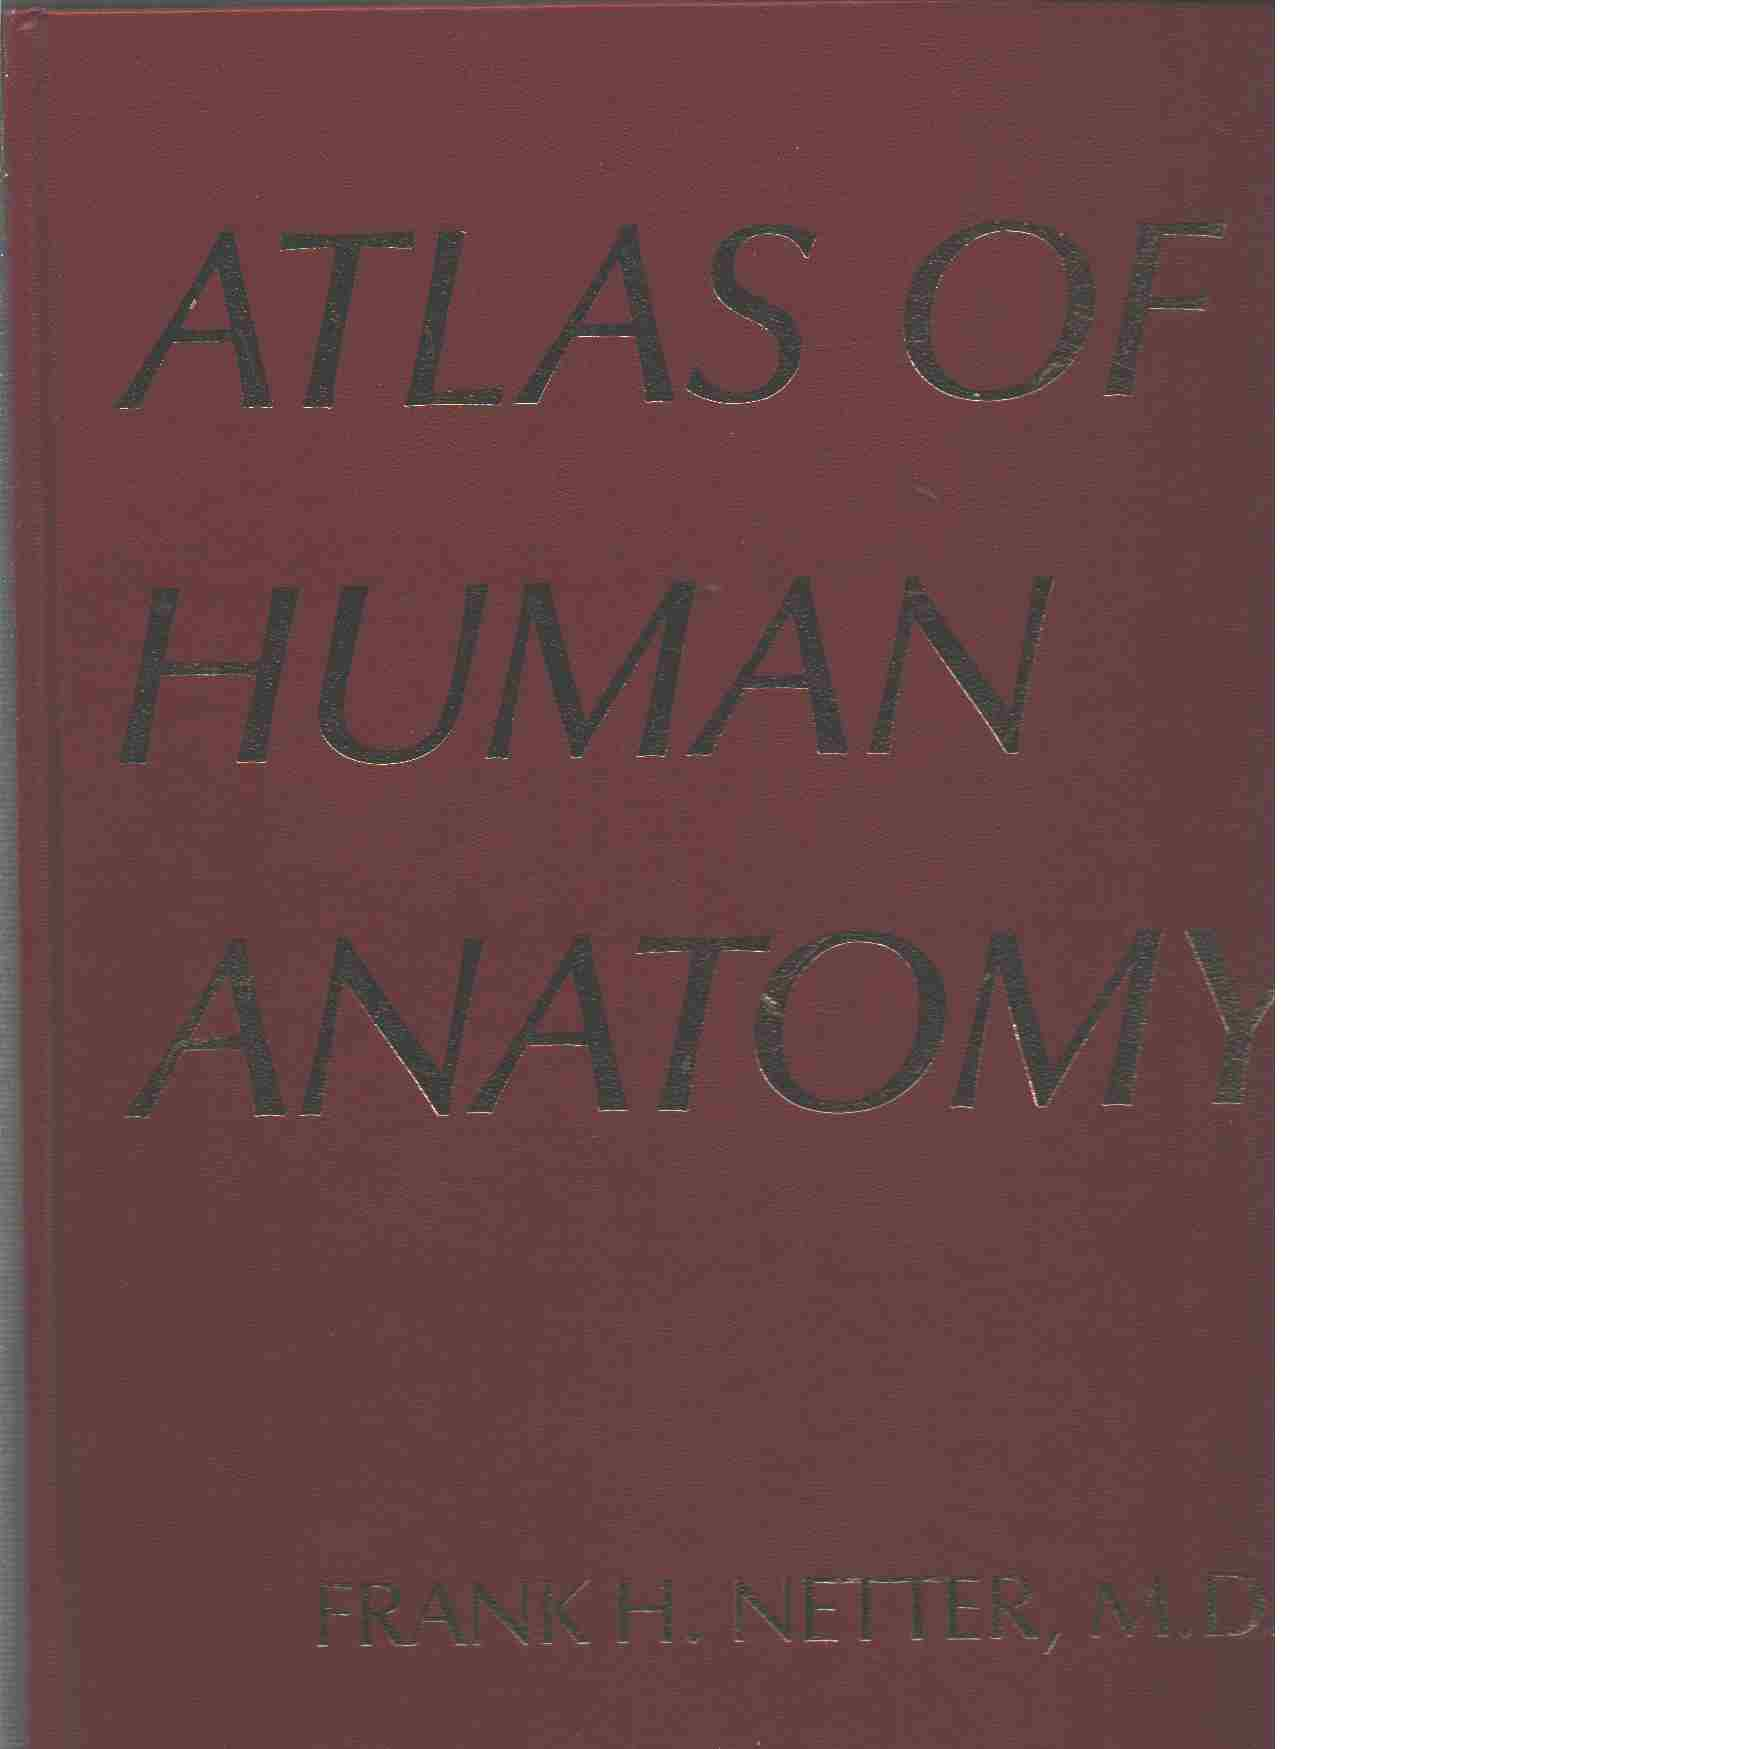 Atlas of human anatomy - Netter, Frank H.,